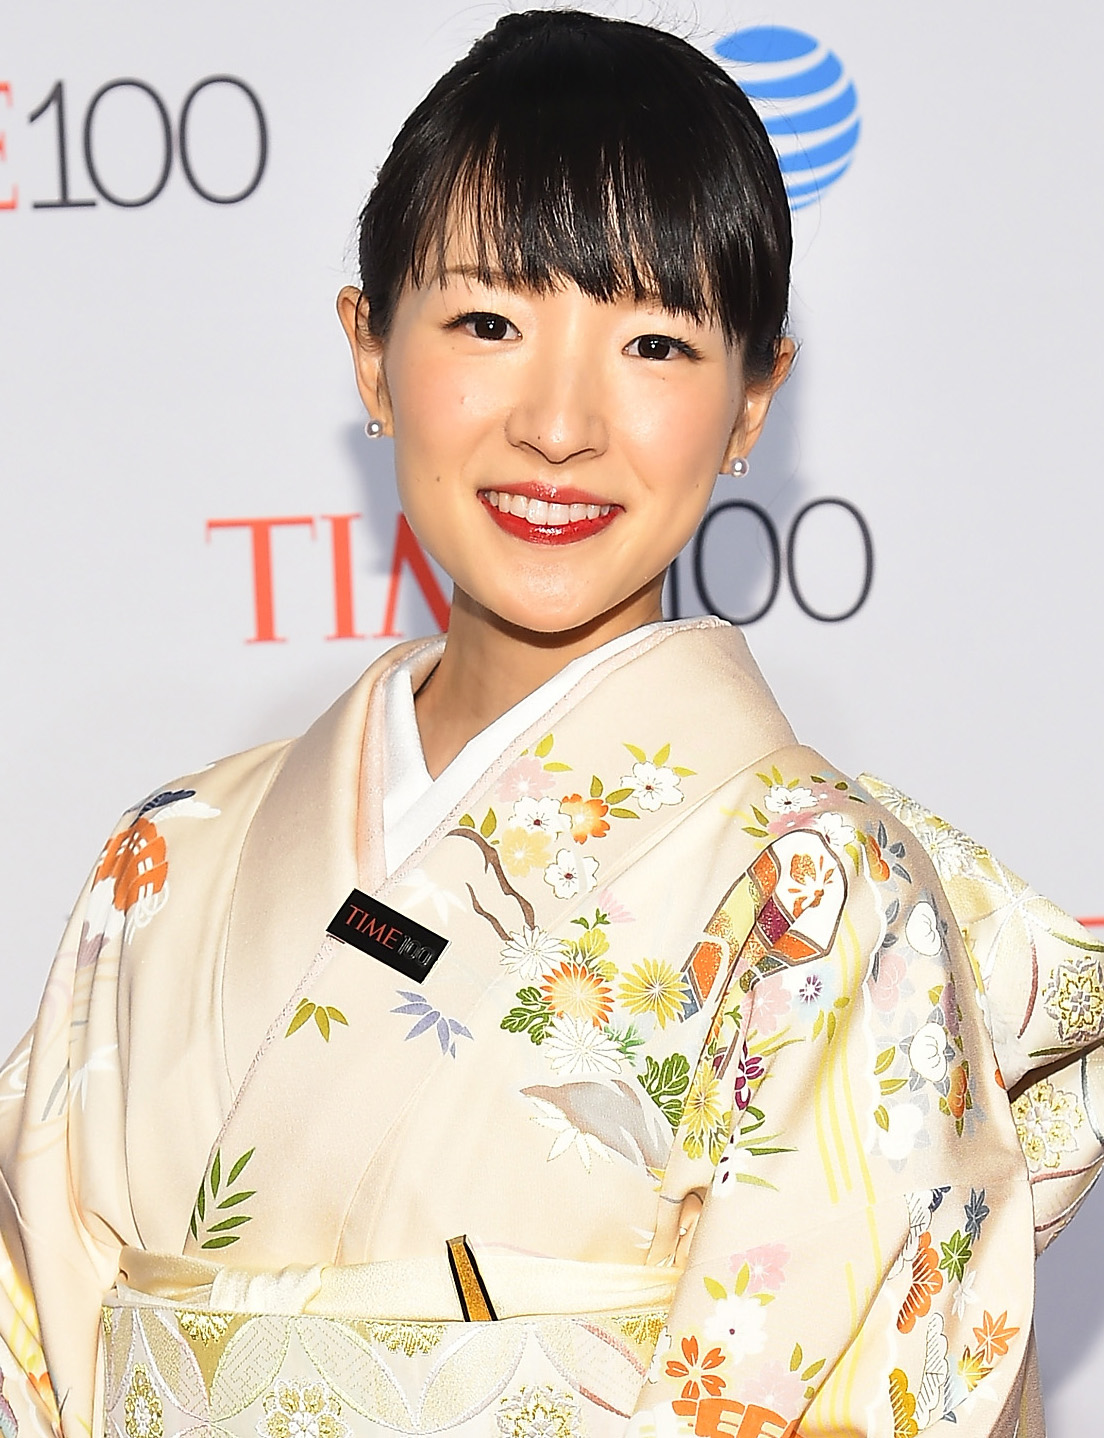 Marie Kondo is About to Change Your Life With a New Comic Book